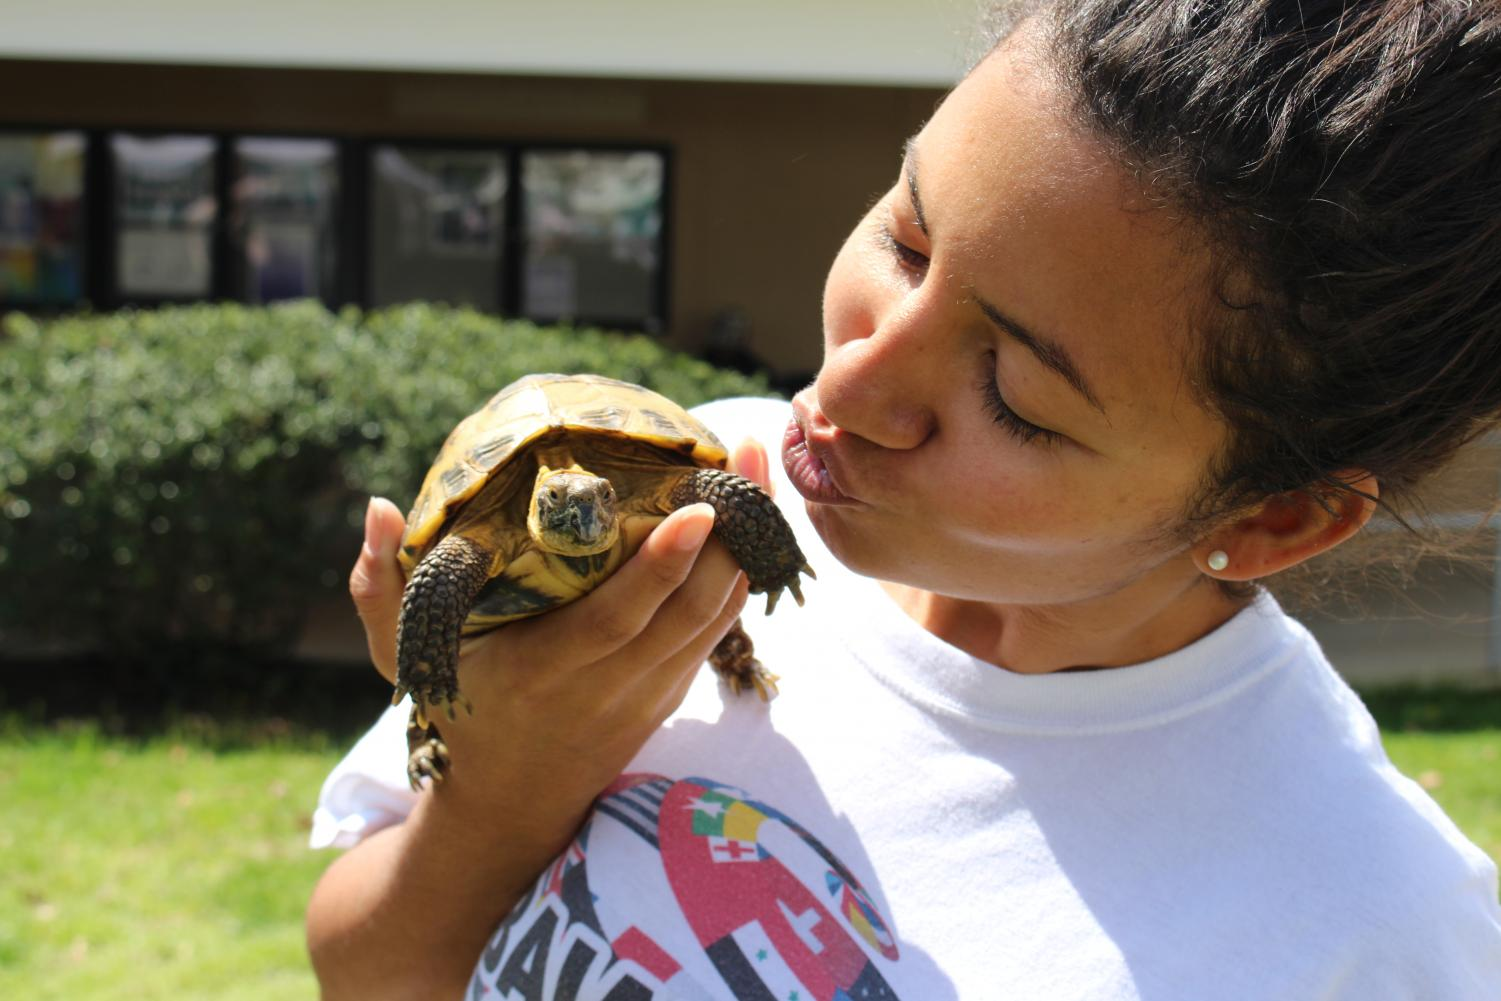 With+all+those+big+snakes+and+horned+lizards%2C+the+less+scary+types+of+reptiles+were+tossed+aside.+The+turtles%2C+cute+and+peaceful%2C+did+not+get+the+attention+they+deserved%21%21